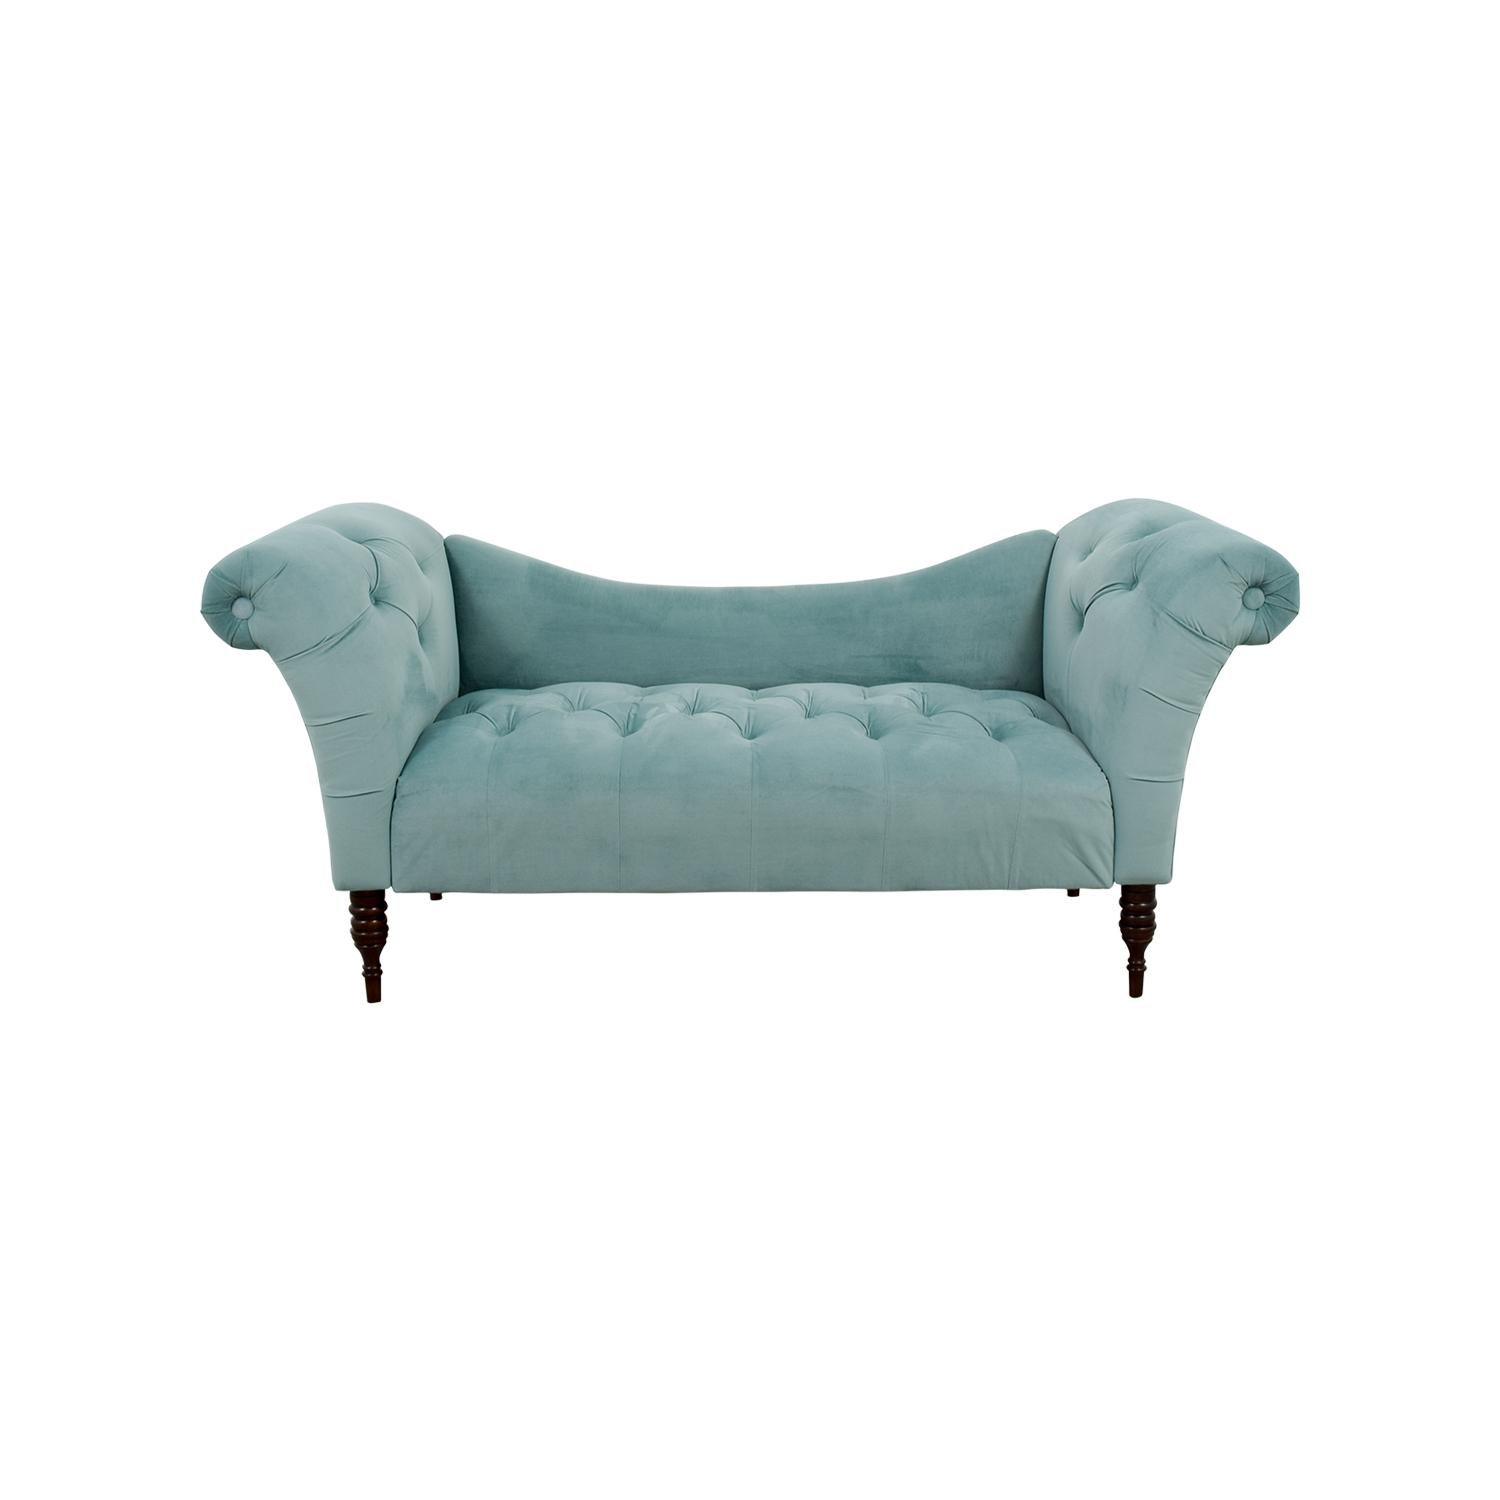 25% Off - Skyline Skyline Aqua Tufted Velvet Settee / Sofas with Skyline Sofas